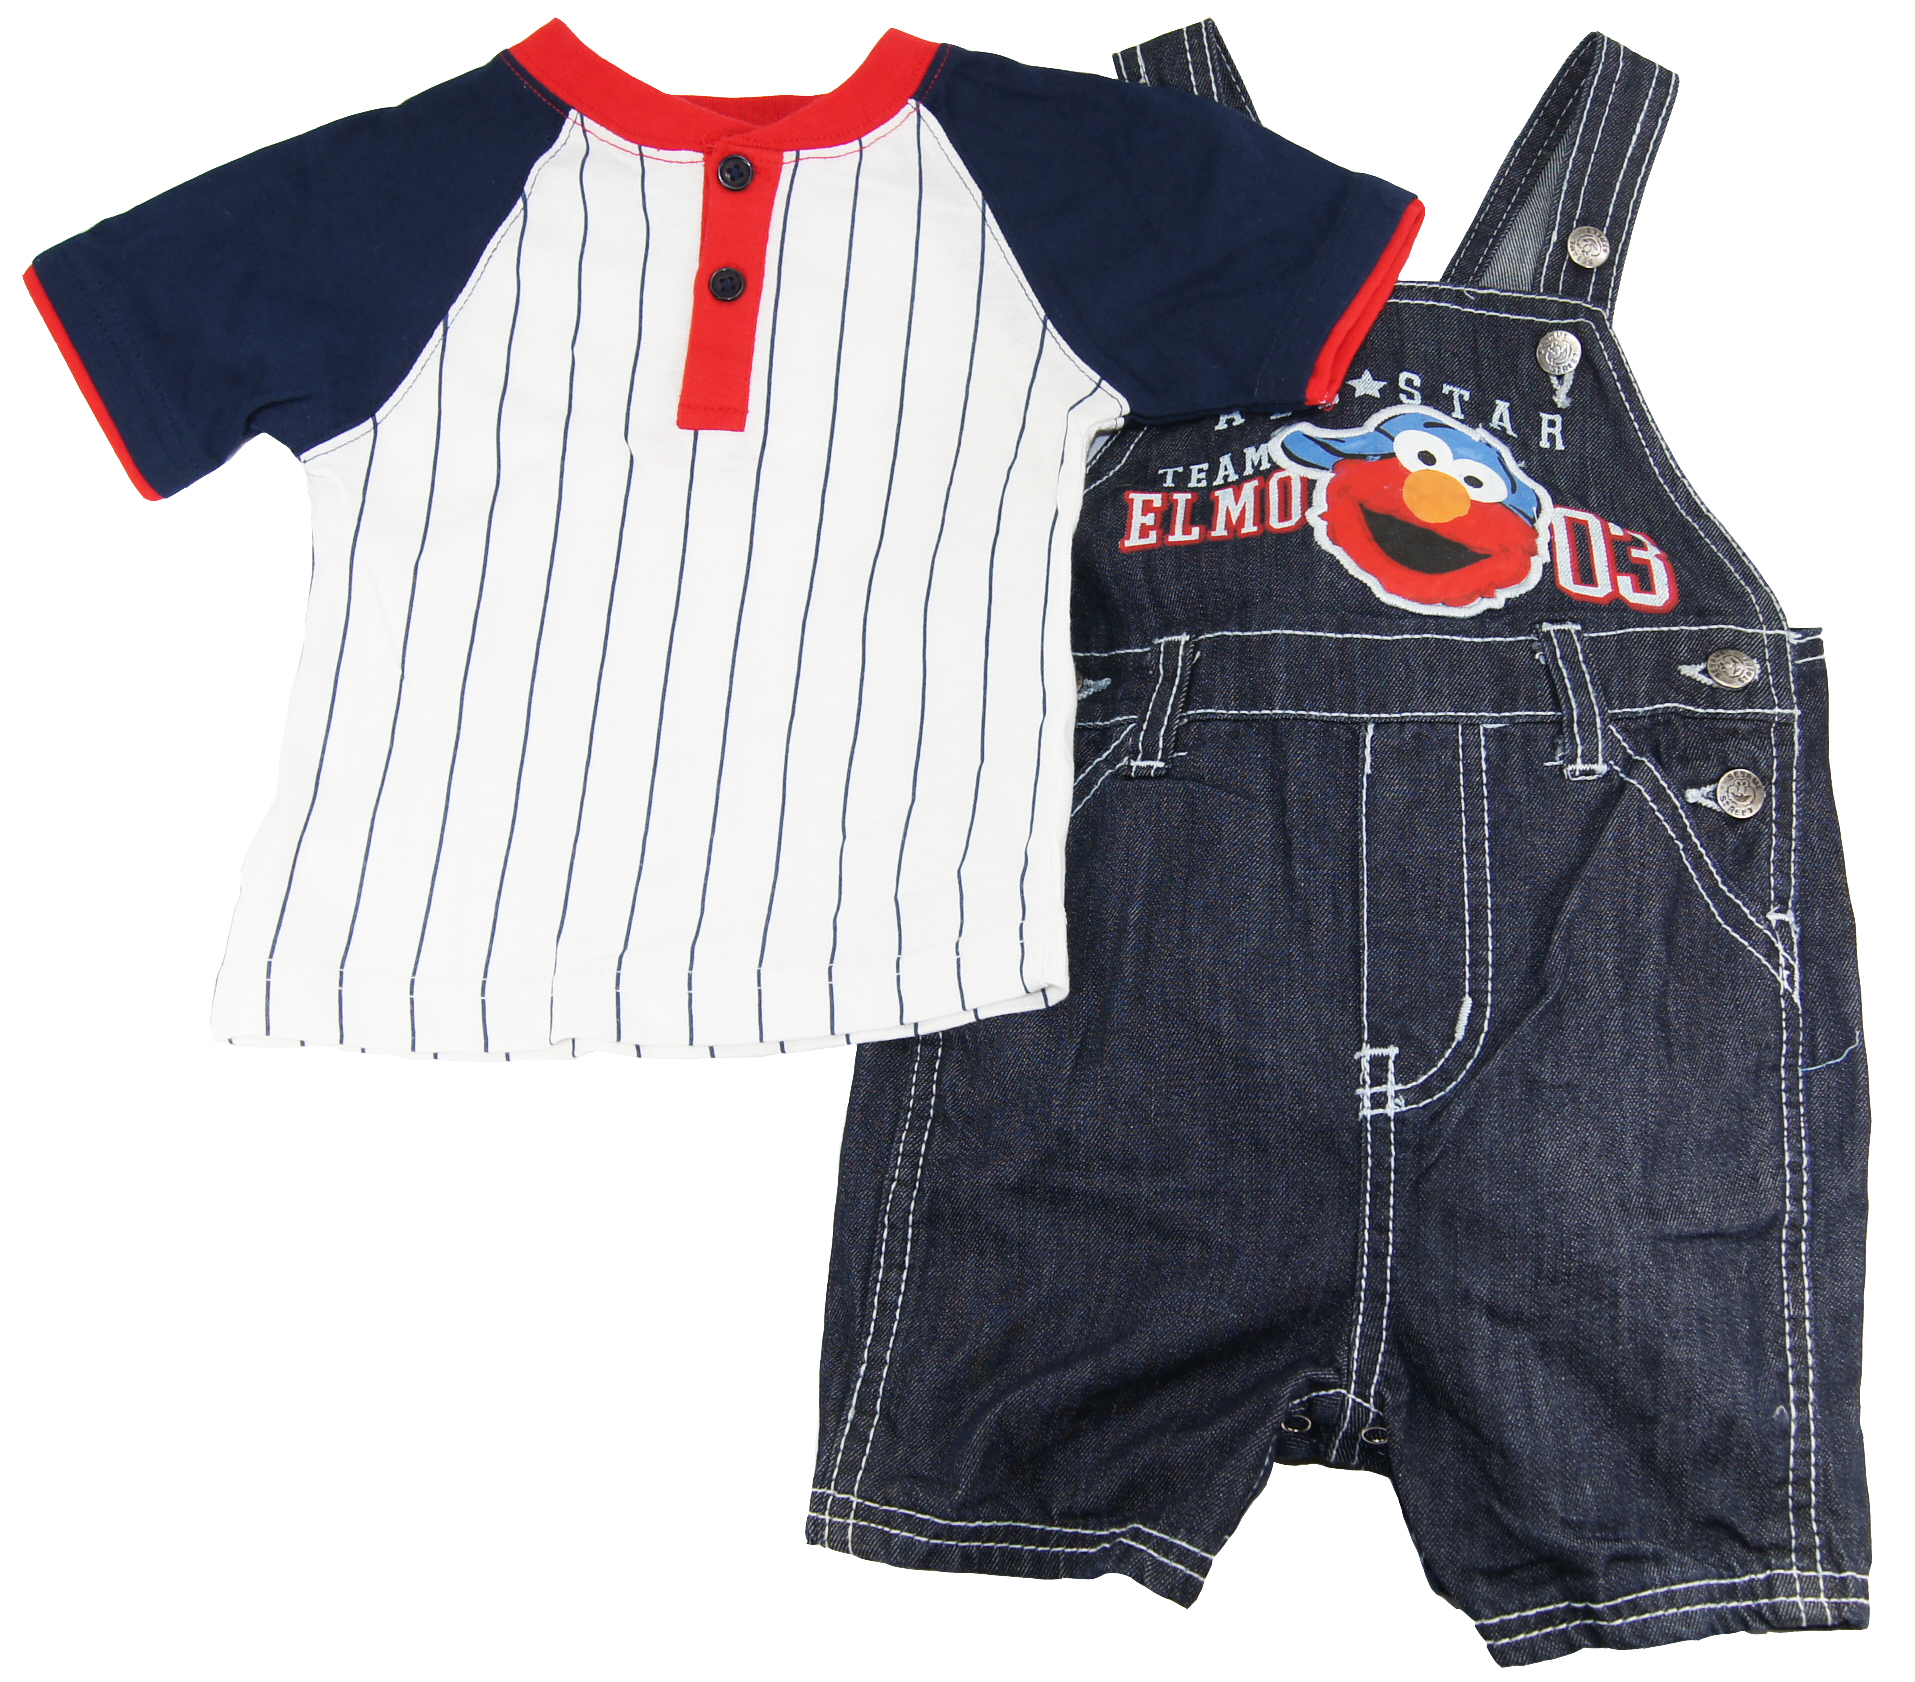 Sesame Street Elmo Sesame Street Baby-boys 12-24M Stripe Knit Pullover and Overalls 2Pc Set at Sears.com